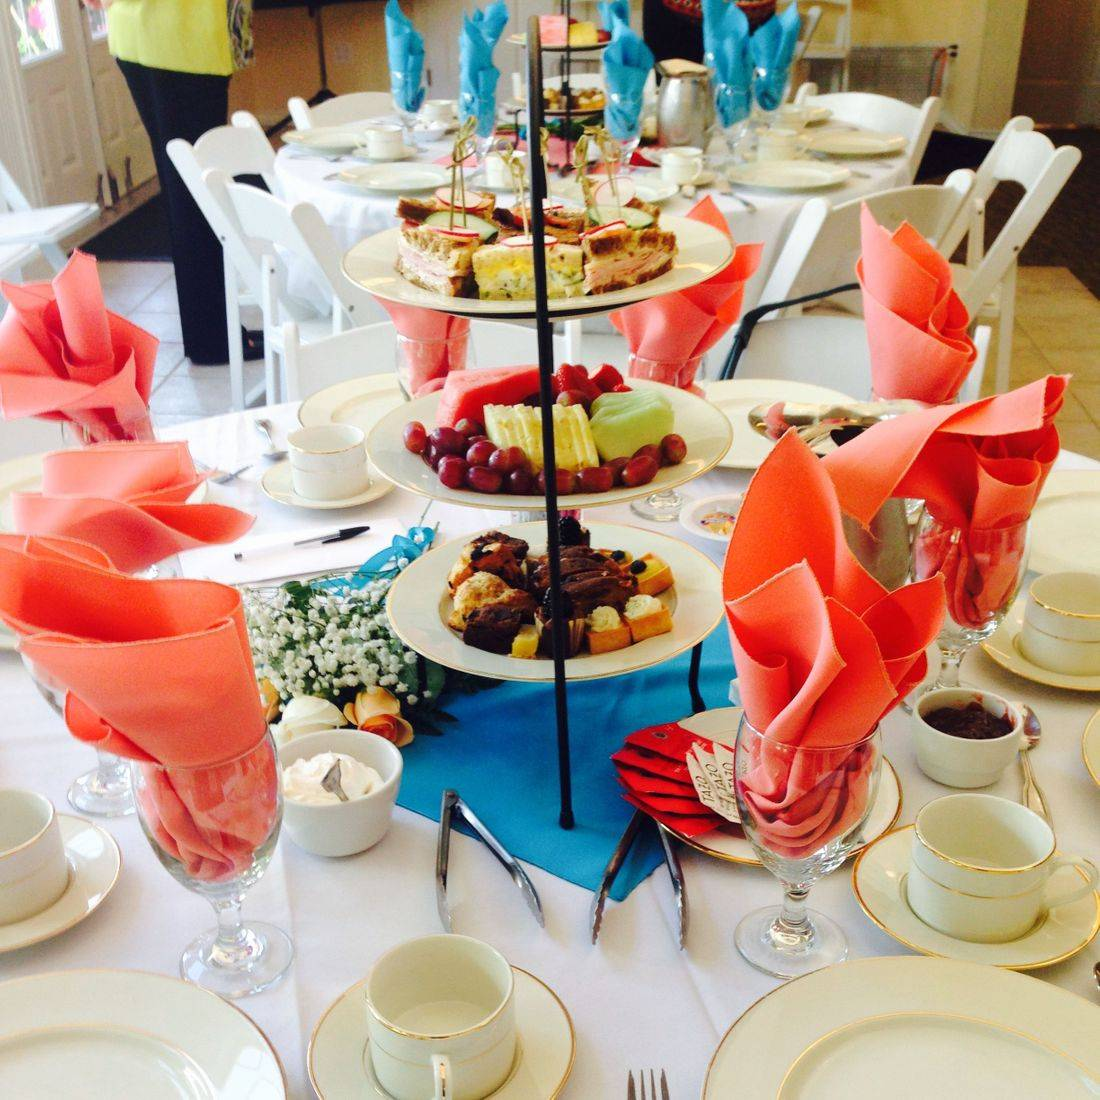 High Tea or English Tea Service Catering